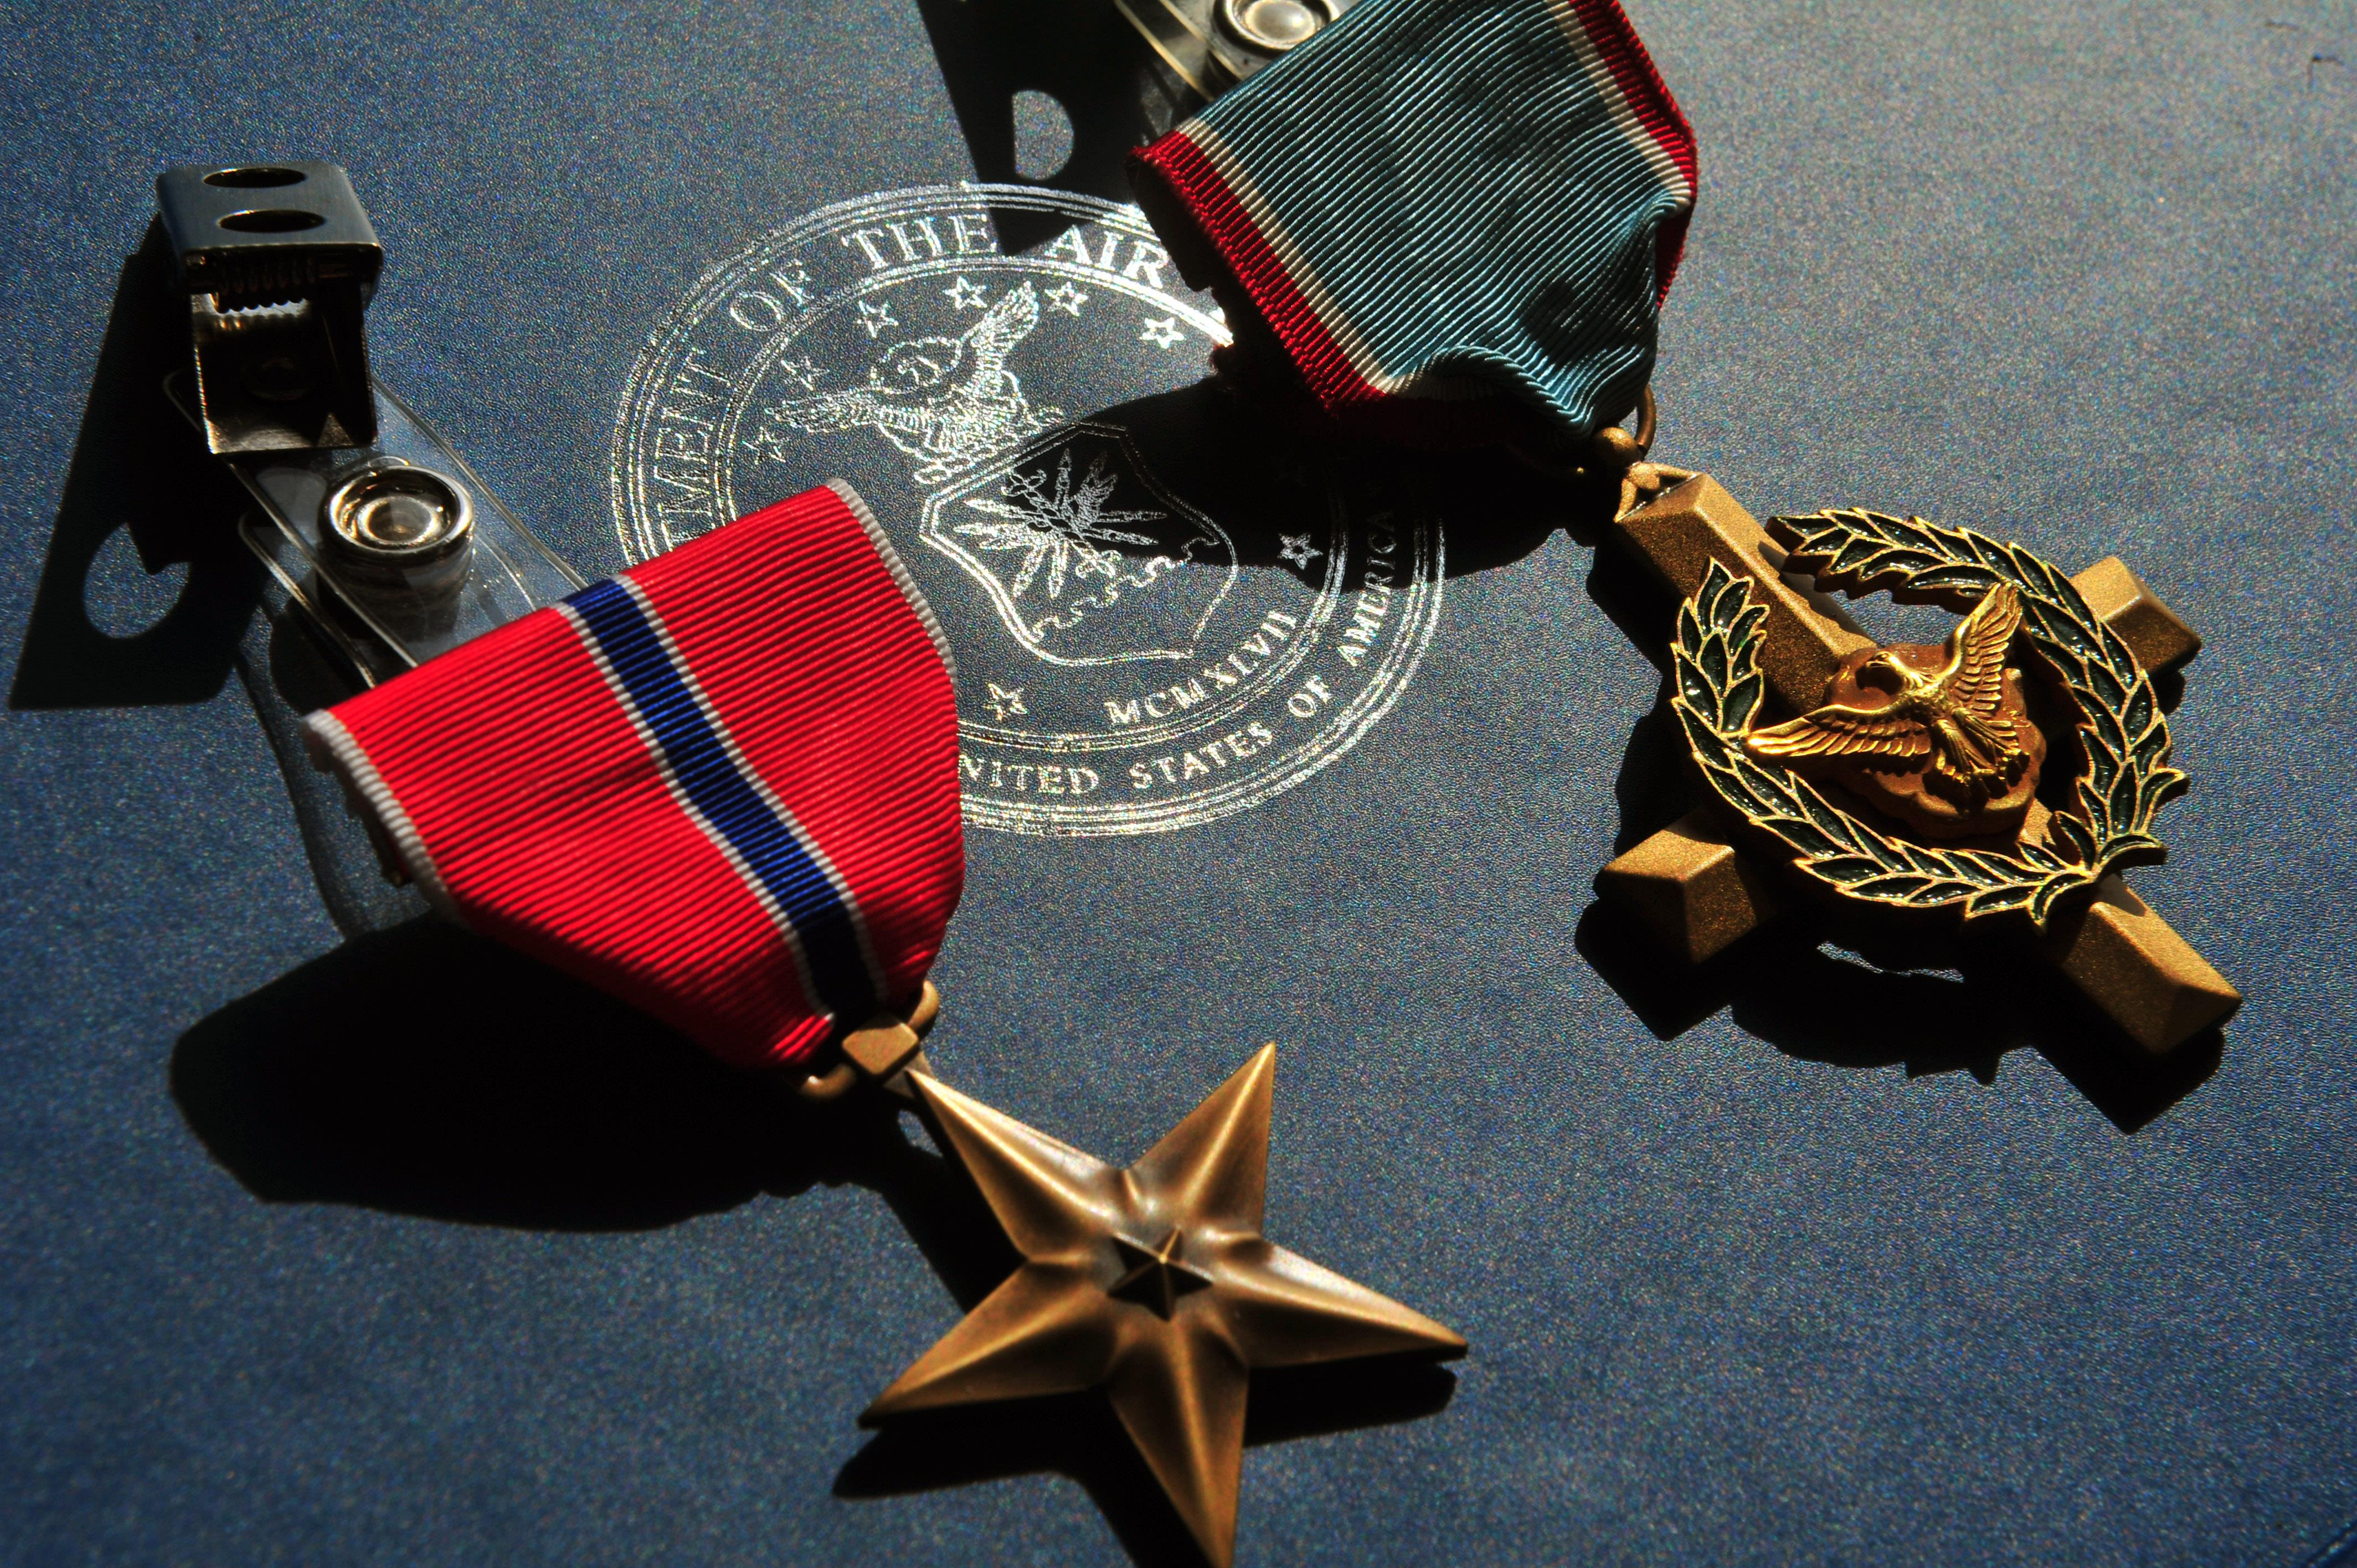 decoration medals summit military decor hero decorations and photos dustoff decoded